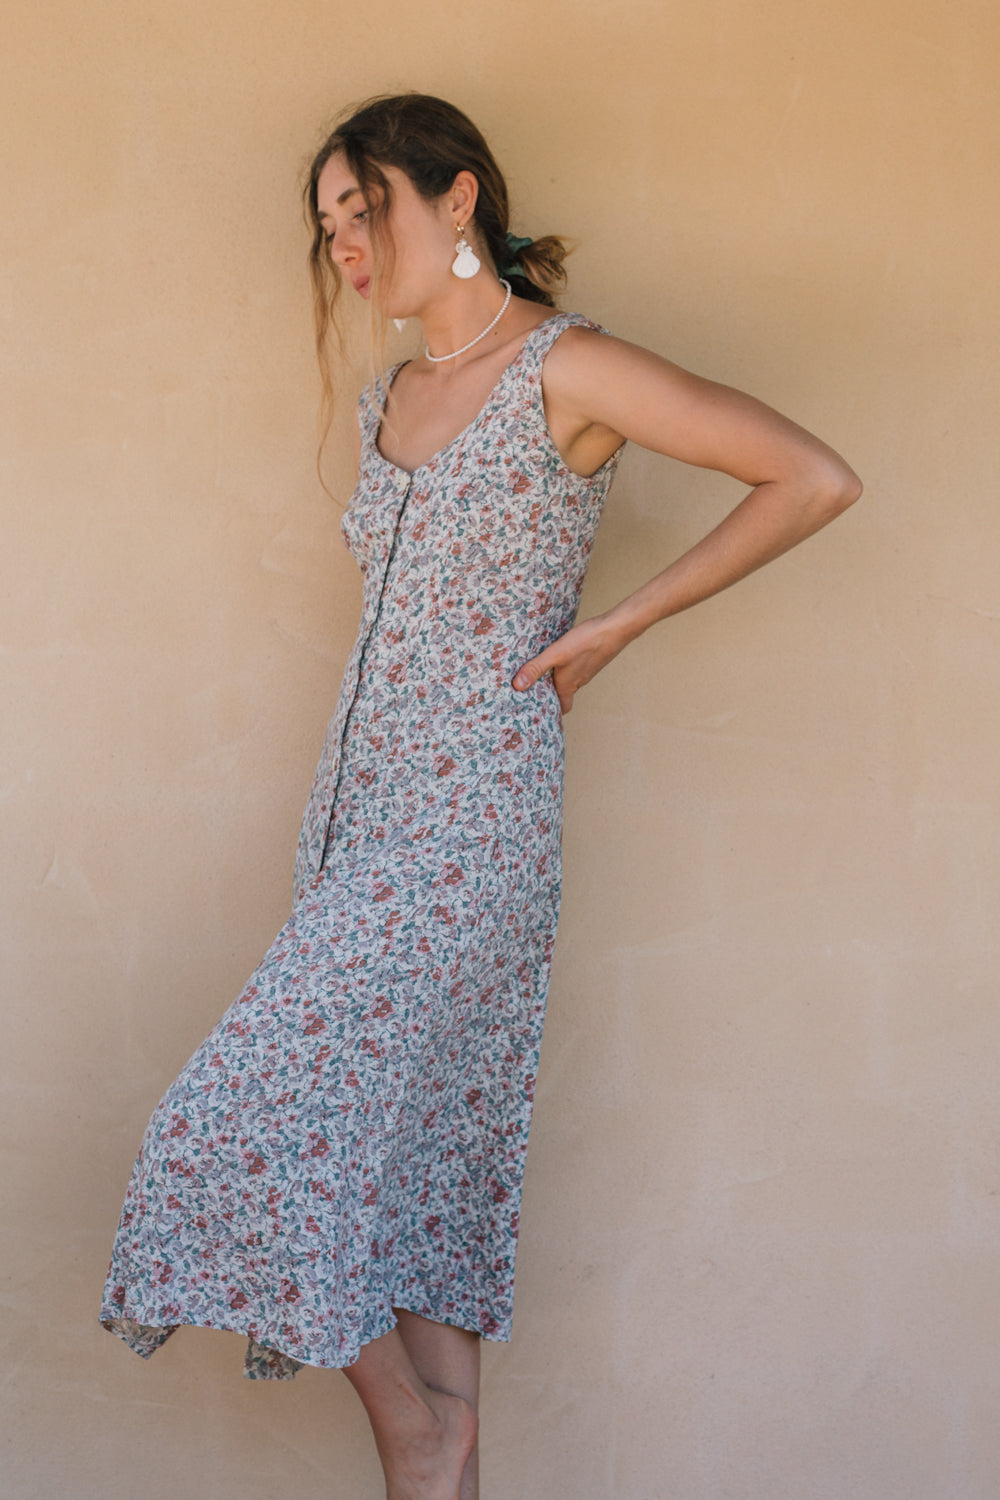 Dress - Nineties Floral Button